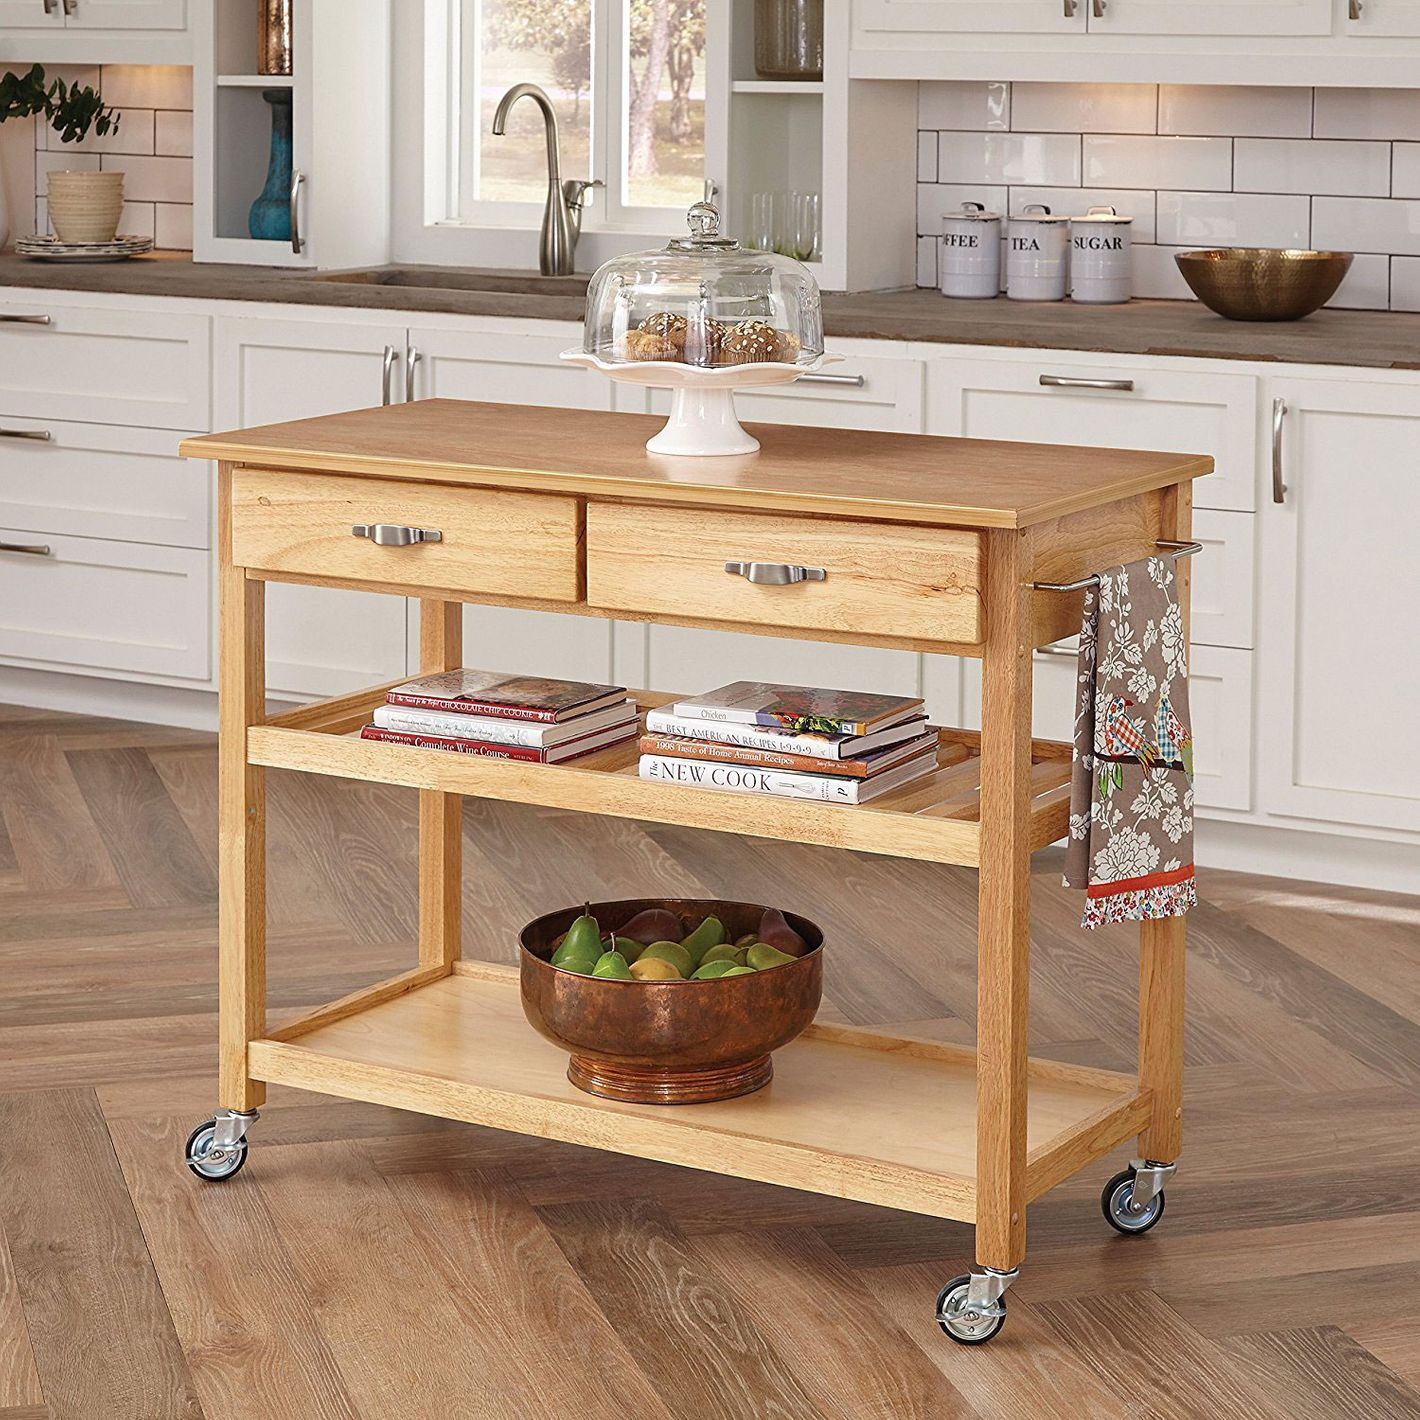 The 14 Best Butcher Block Kitchen Islands And Carts 2018 Work Table